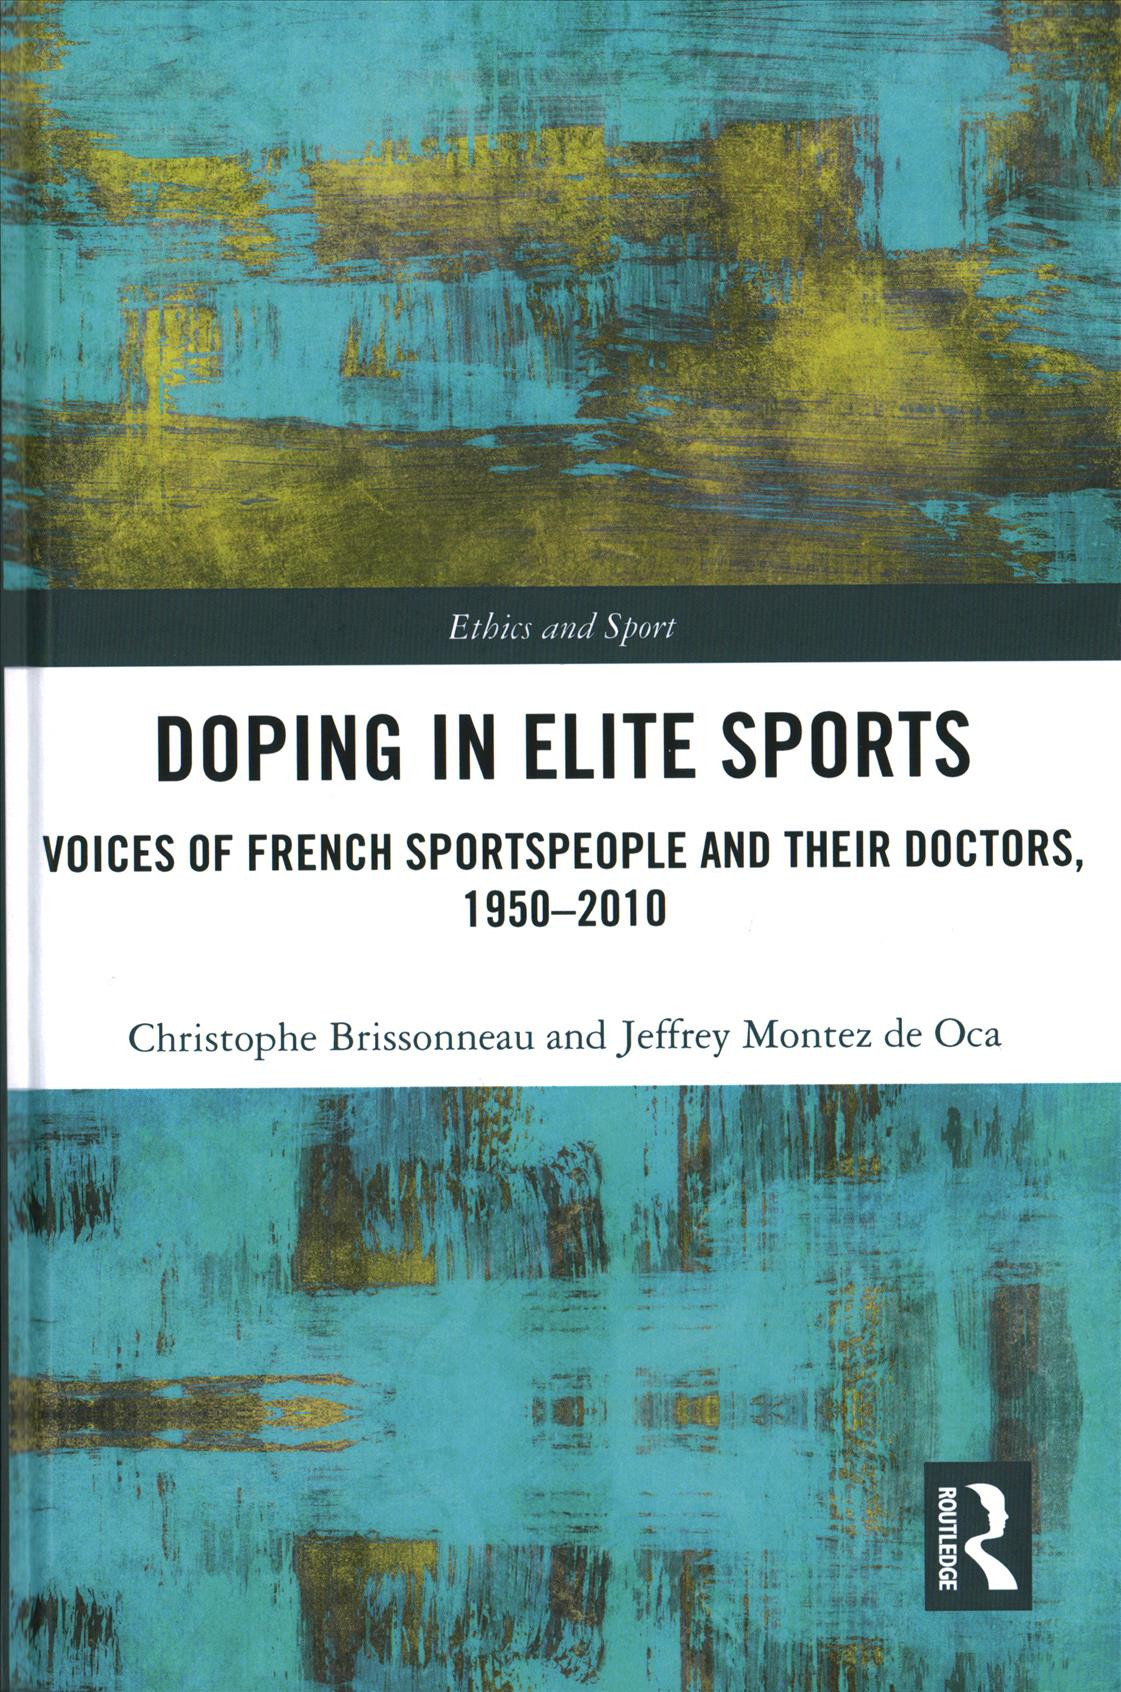 A newly study published in the book Doping in Elite Sports - Voices of French sportspeople and Their Doctors, 1950-2010 offers a richly researched view on how doping in elite sport has developed and operated since 1950 ©Routledge